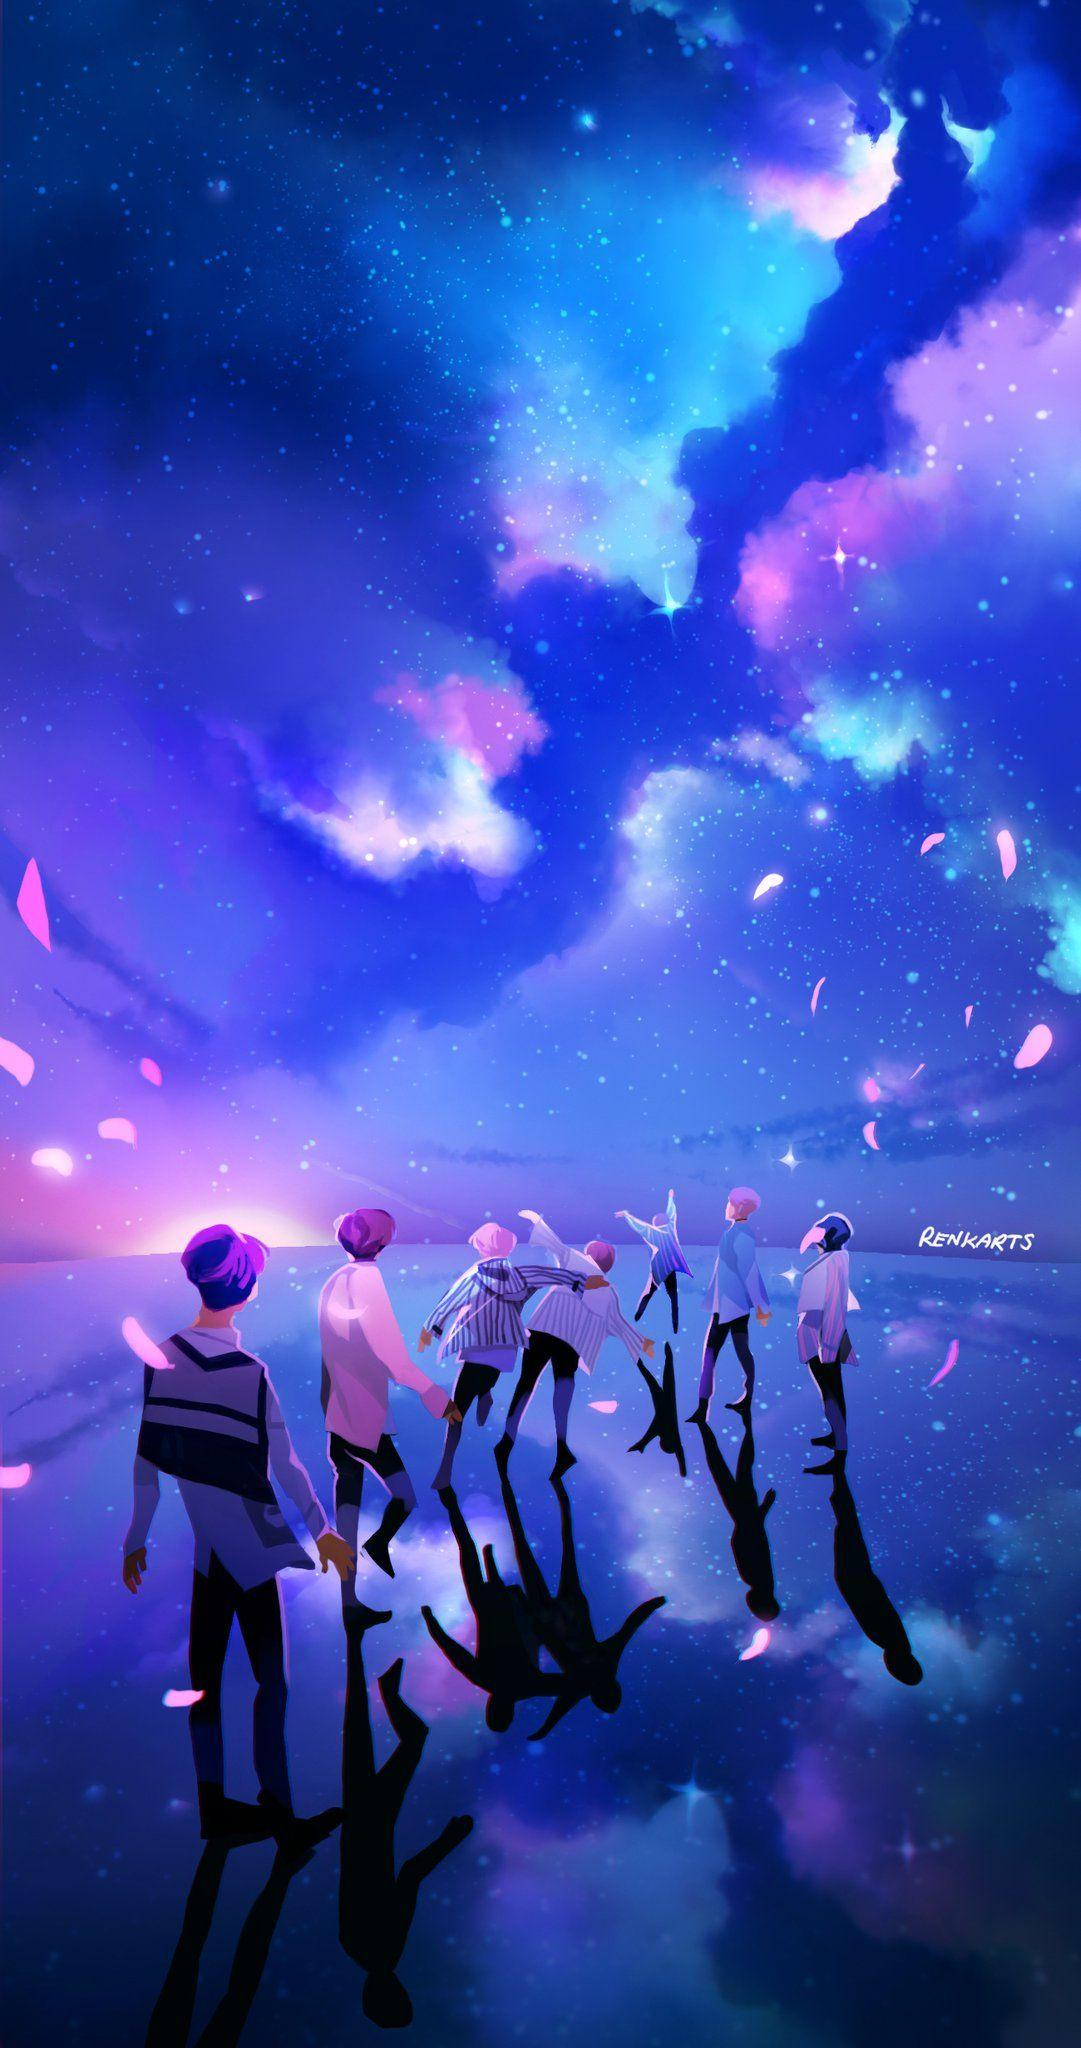 Download Wallpaper BTS Fan Art Galaxy Wallpaper for iPhone and Android New 2020